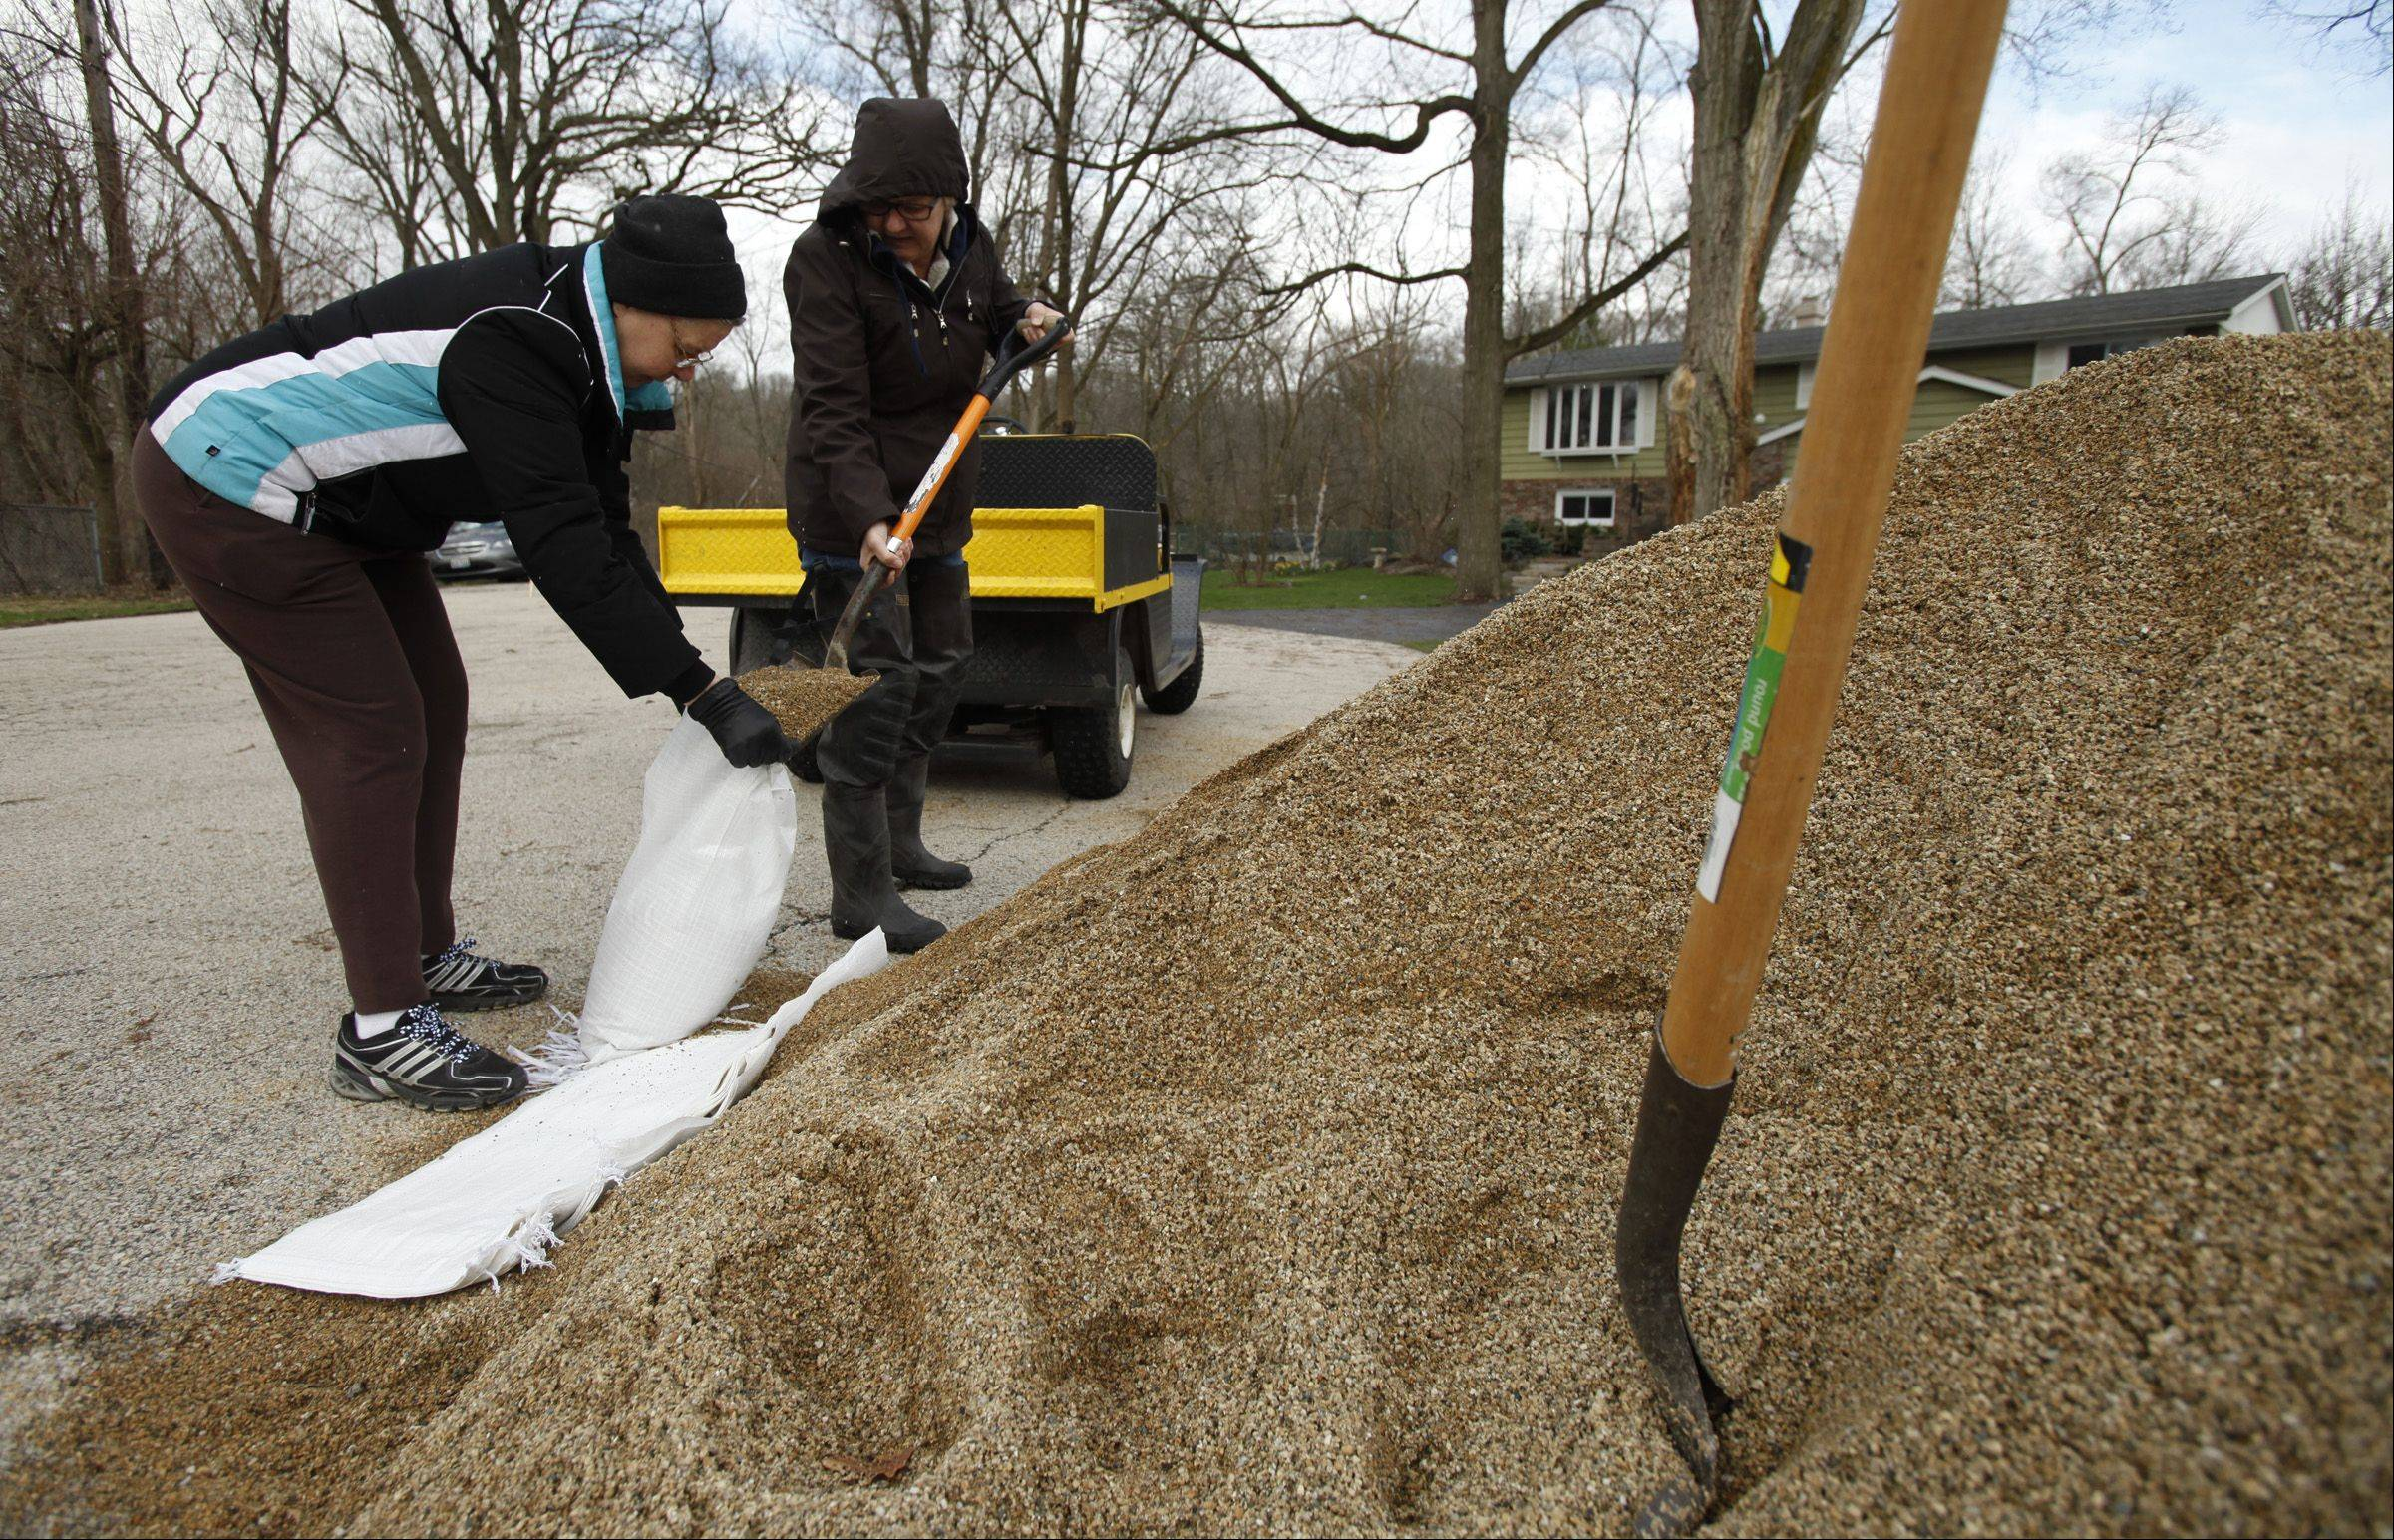 Yvonne Dragon, left, and Nan Gagliano fill sandbags near their homes on Algonquin's east side Friday morning.